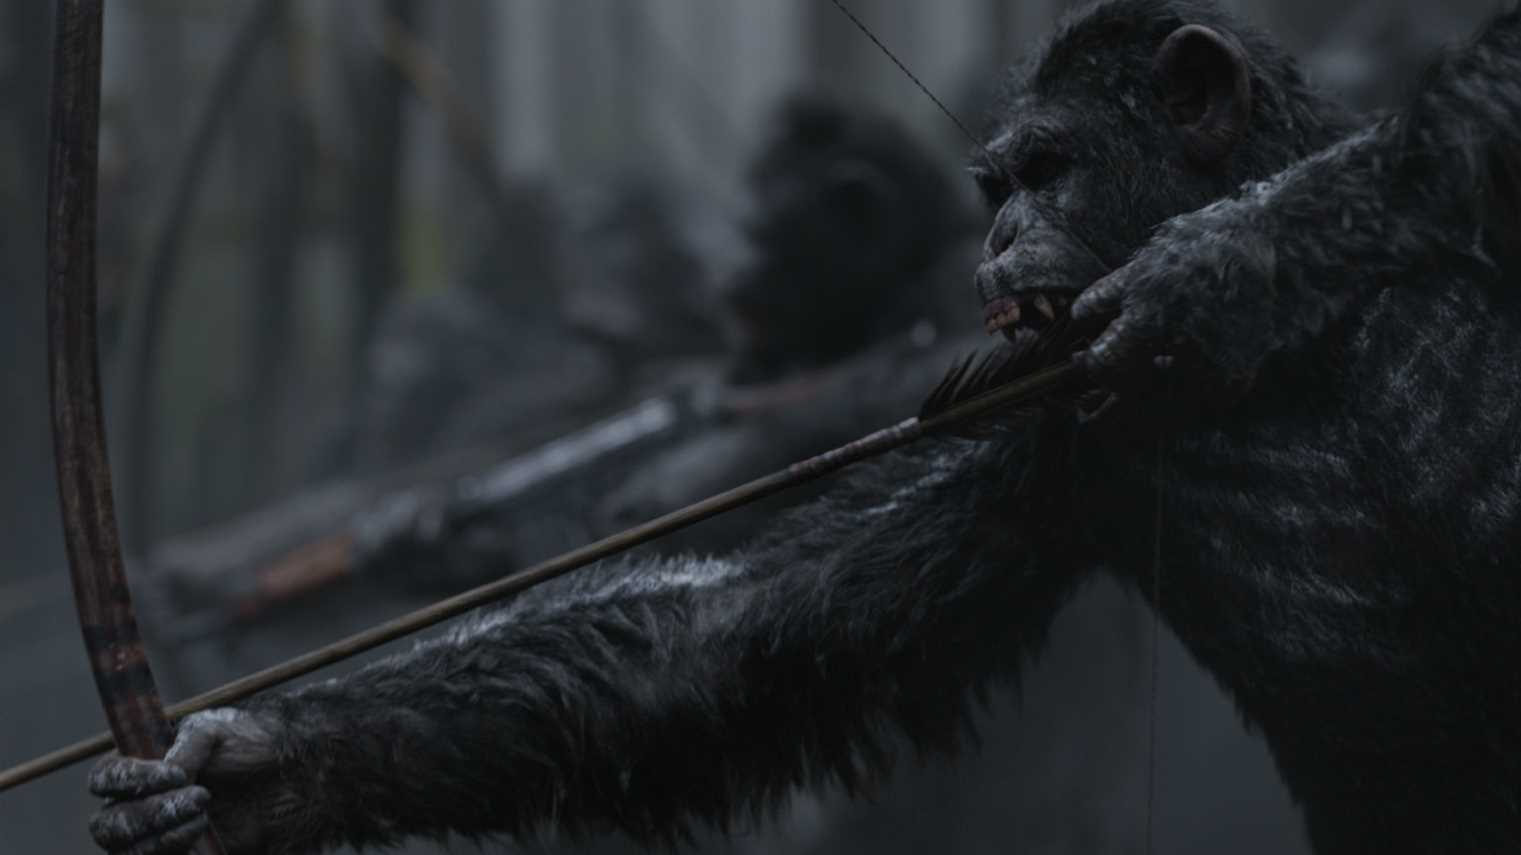 Here's how to get your mitts on an exclusive Planet of the Apes poster